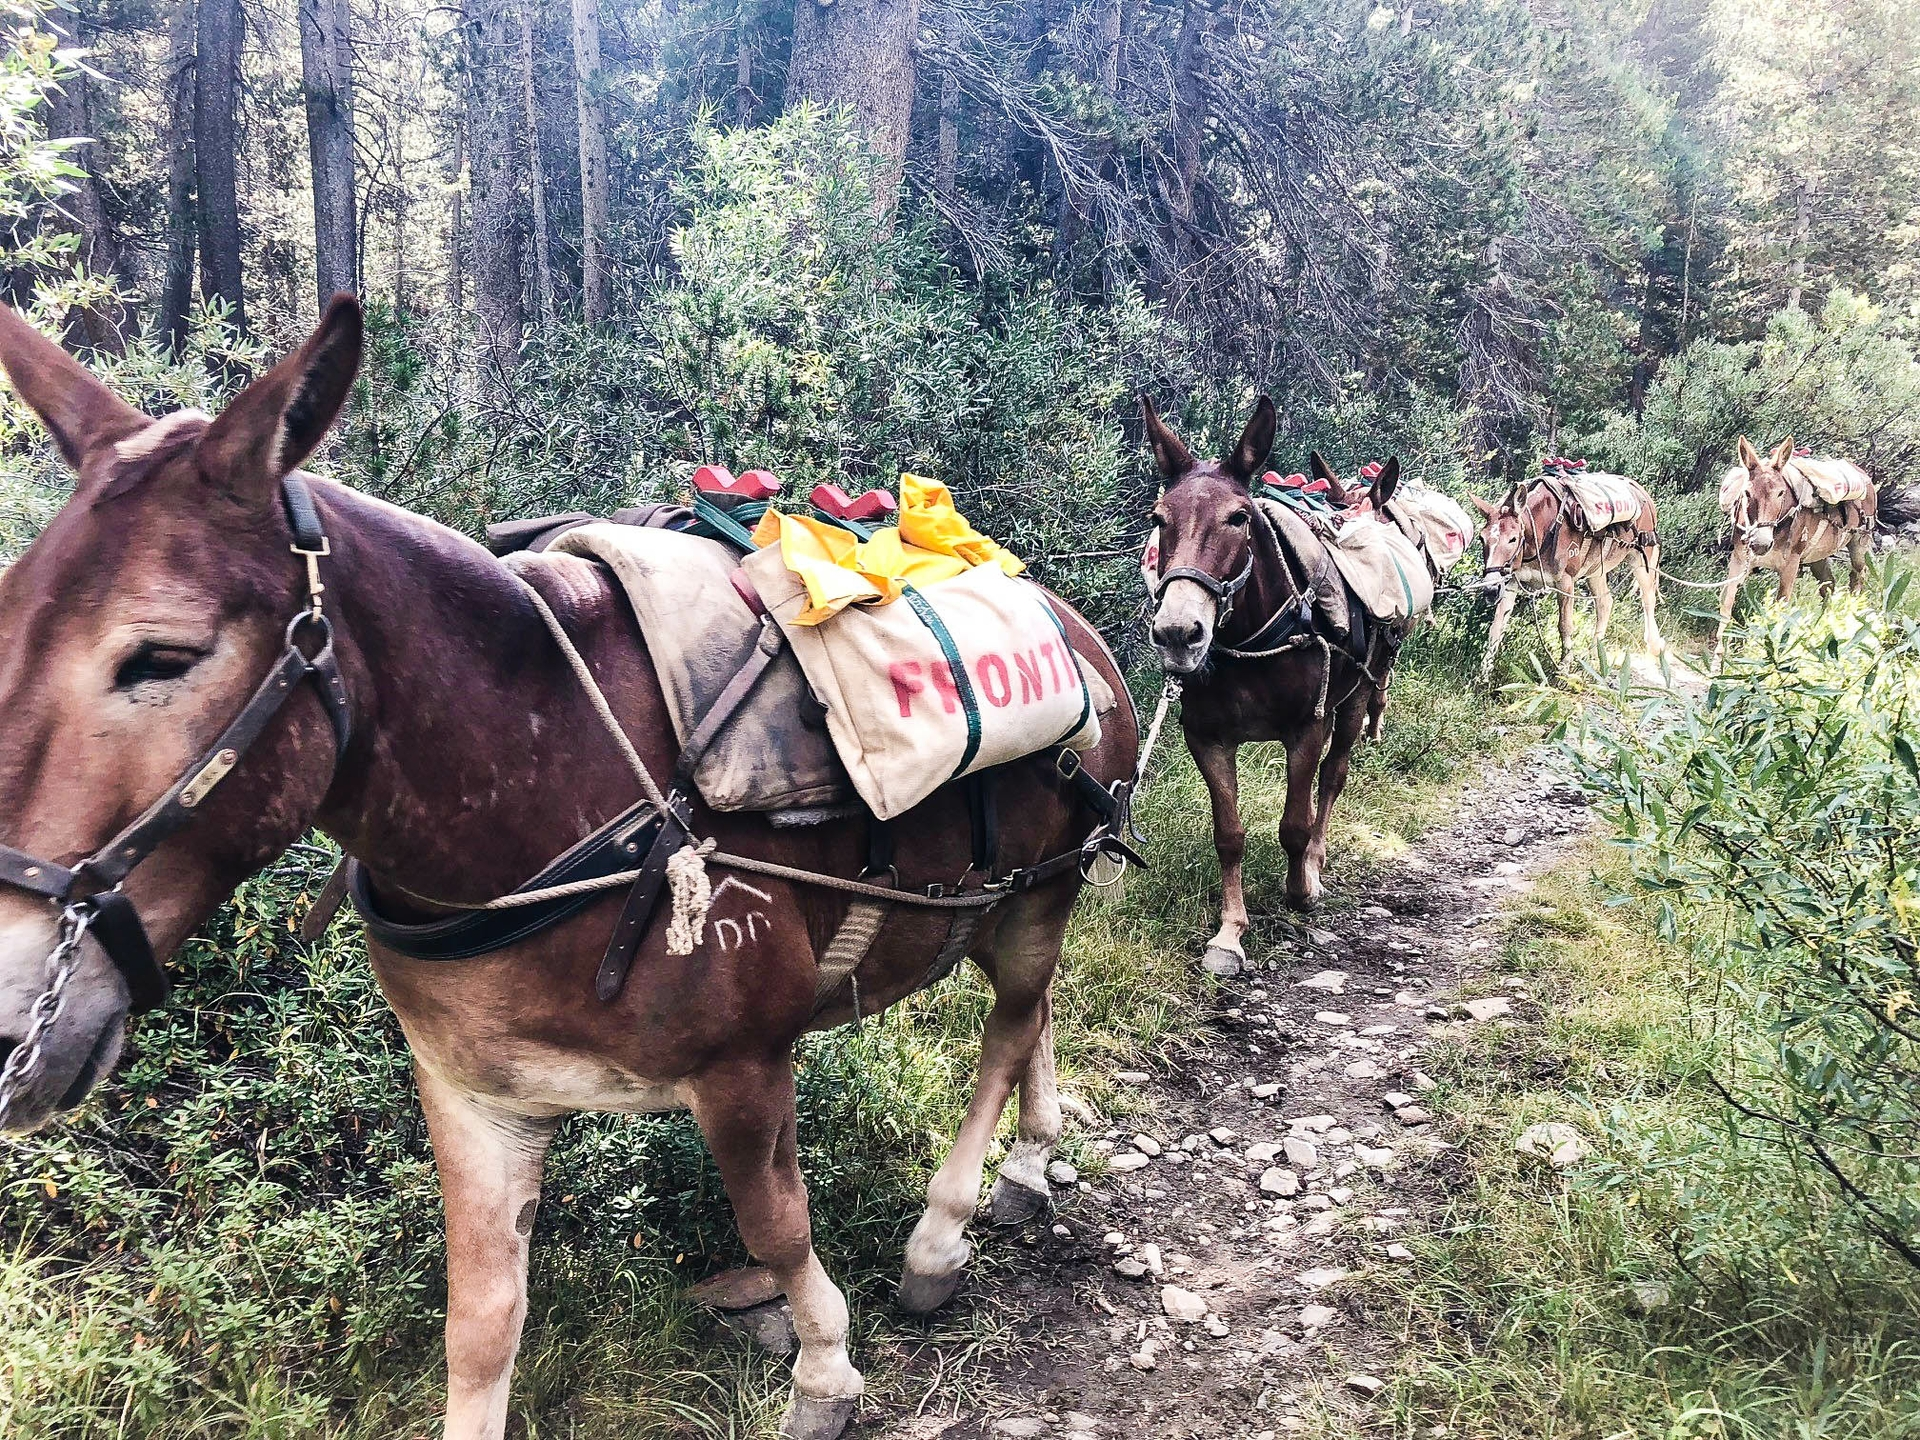 Mules from Frontier Pack Train helped transport SCE equipment and materials for dam work in the Ansel Adams Wilderness.